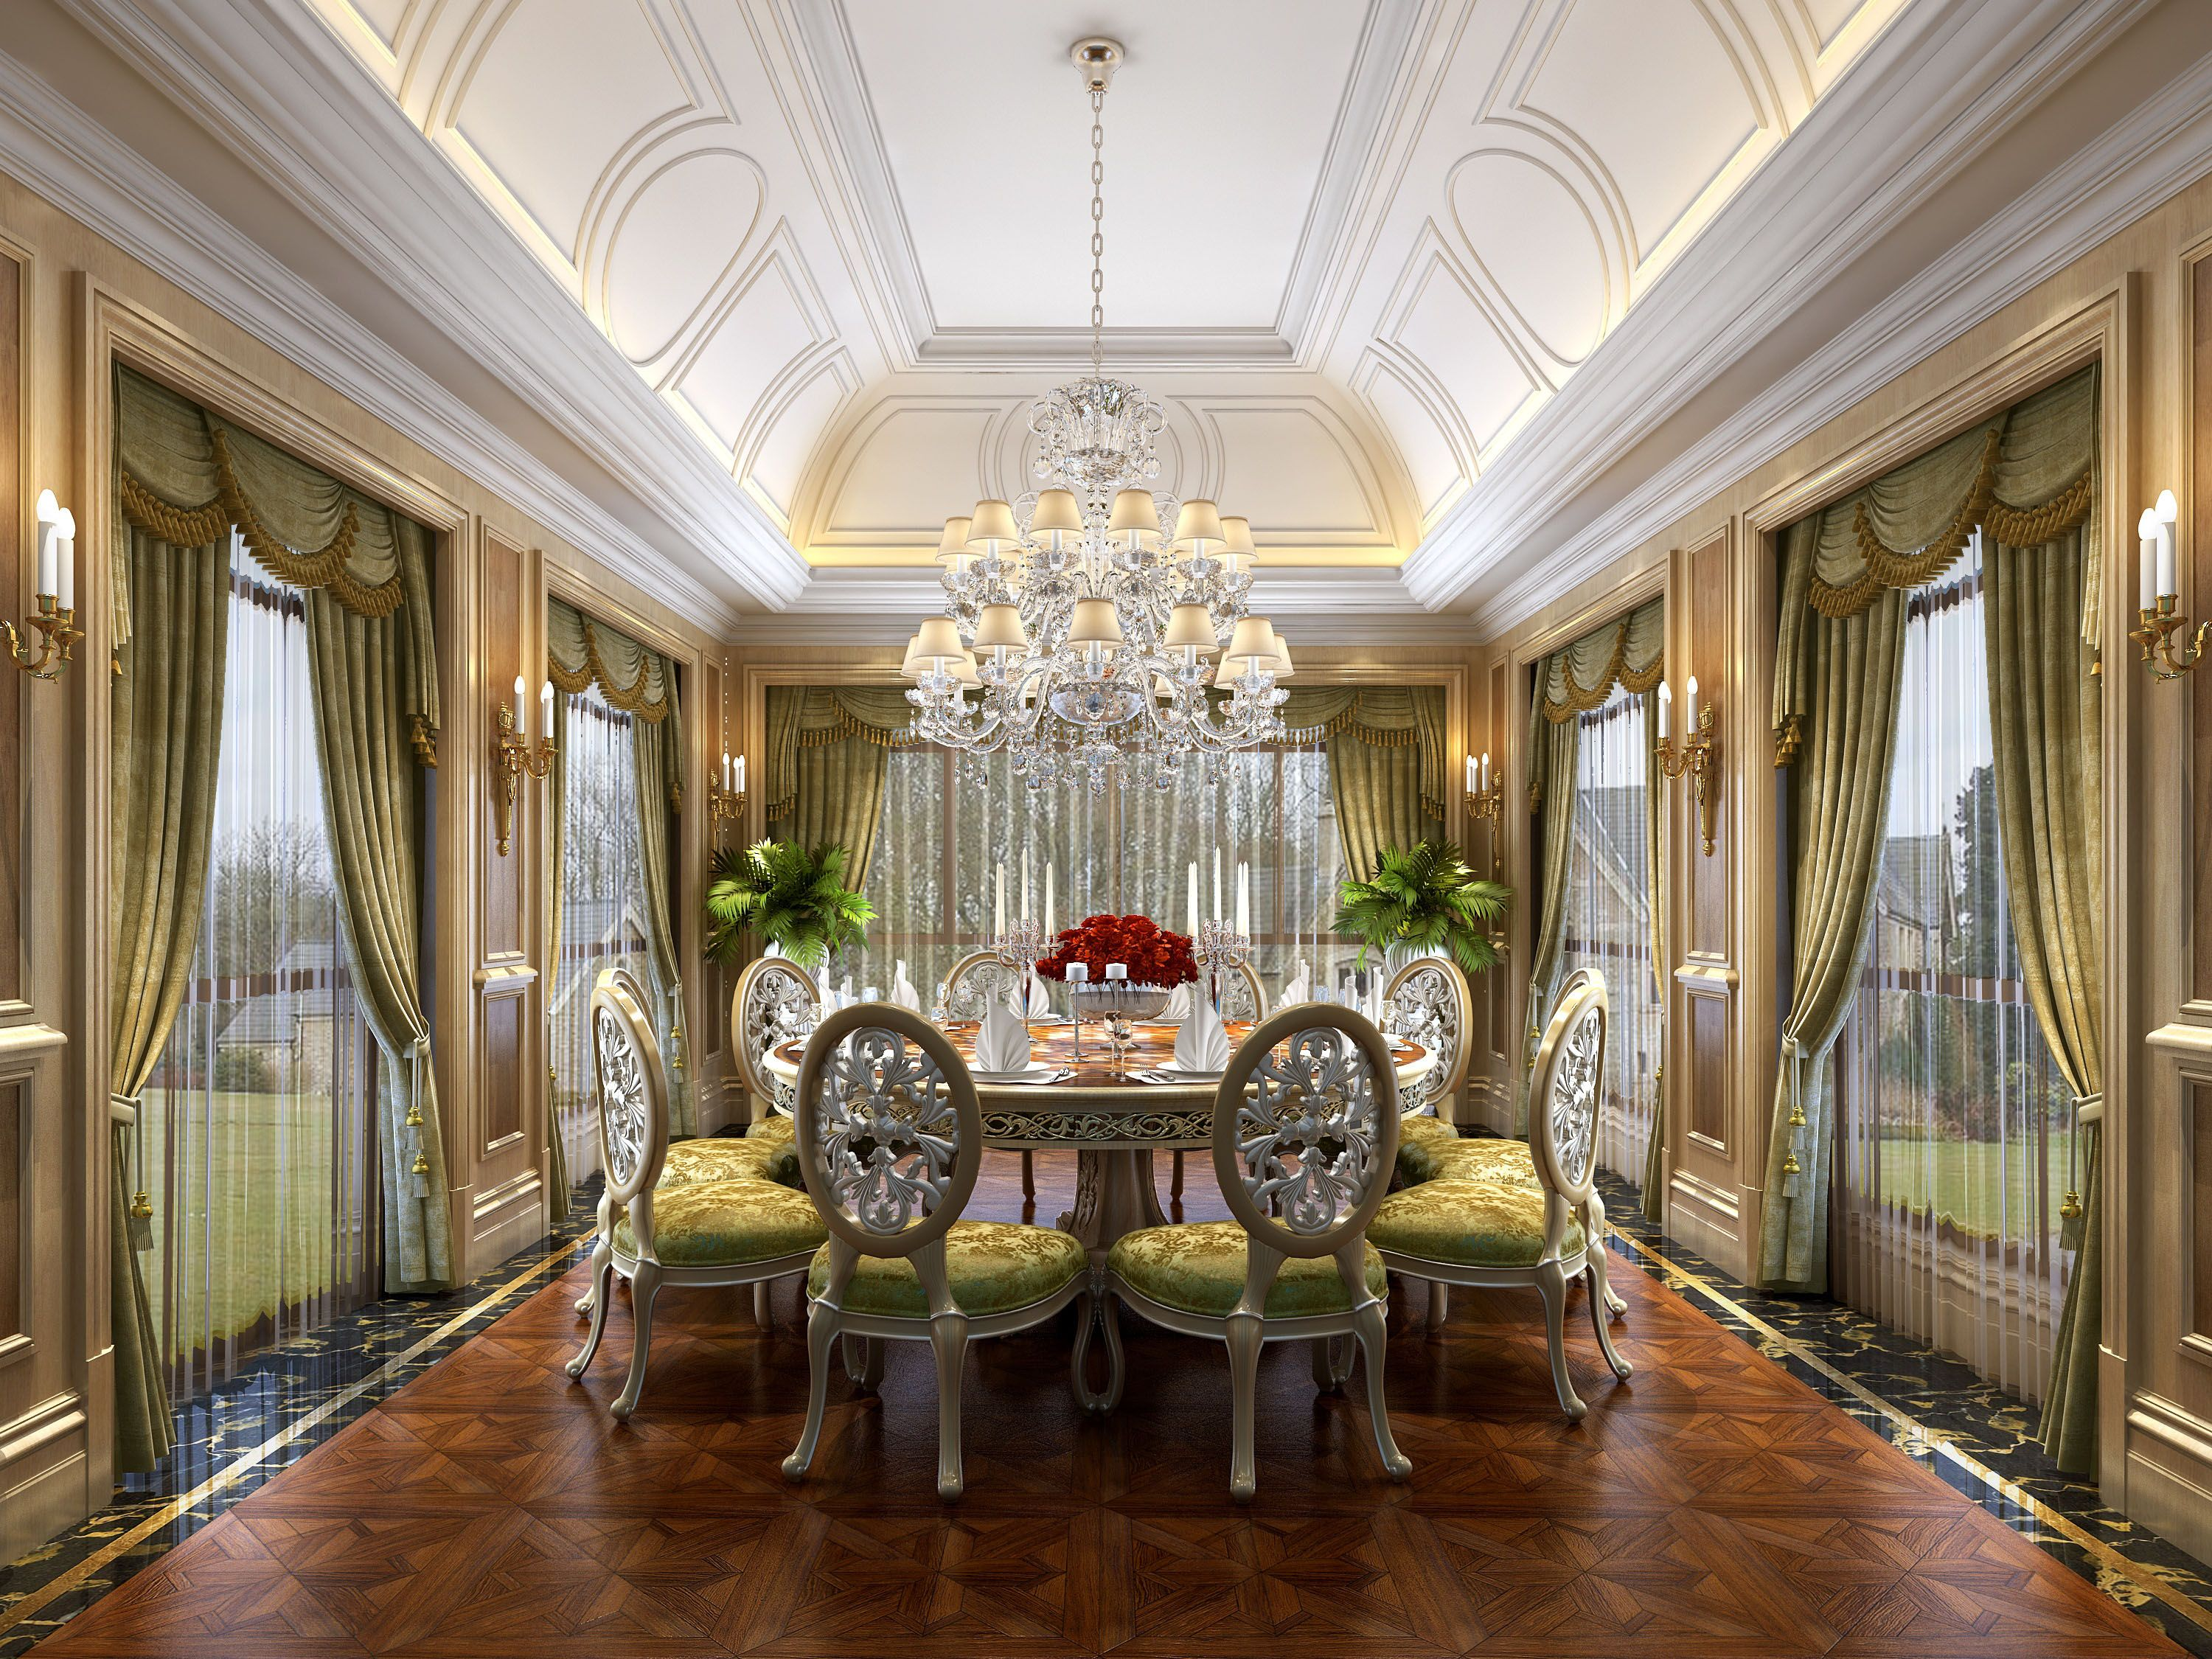 Pin By Fire Xiang On 法式 Luxury Interior Dining Room